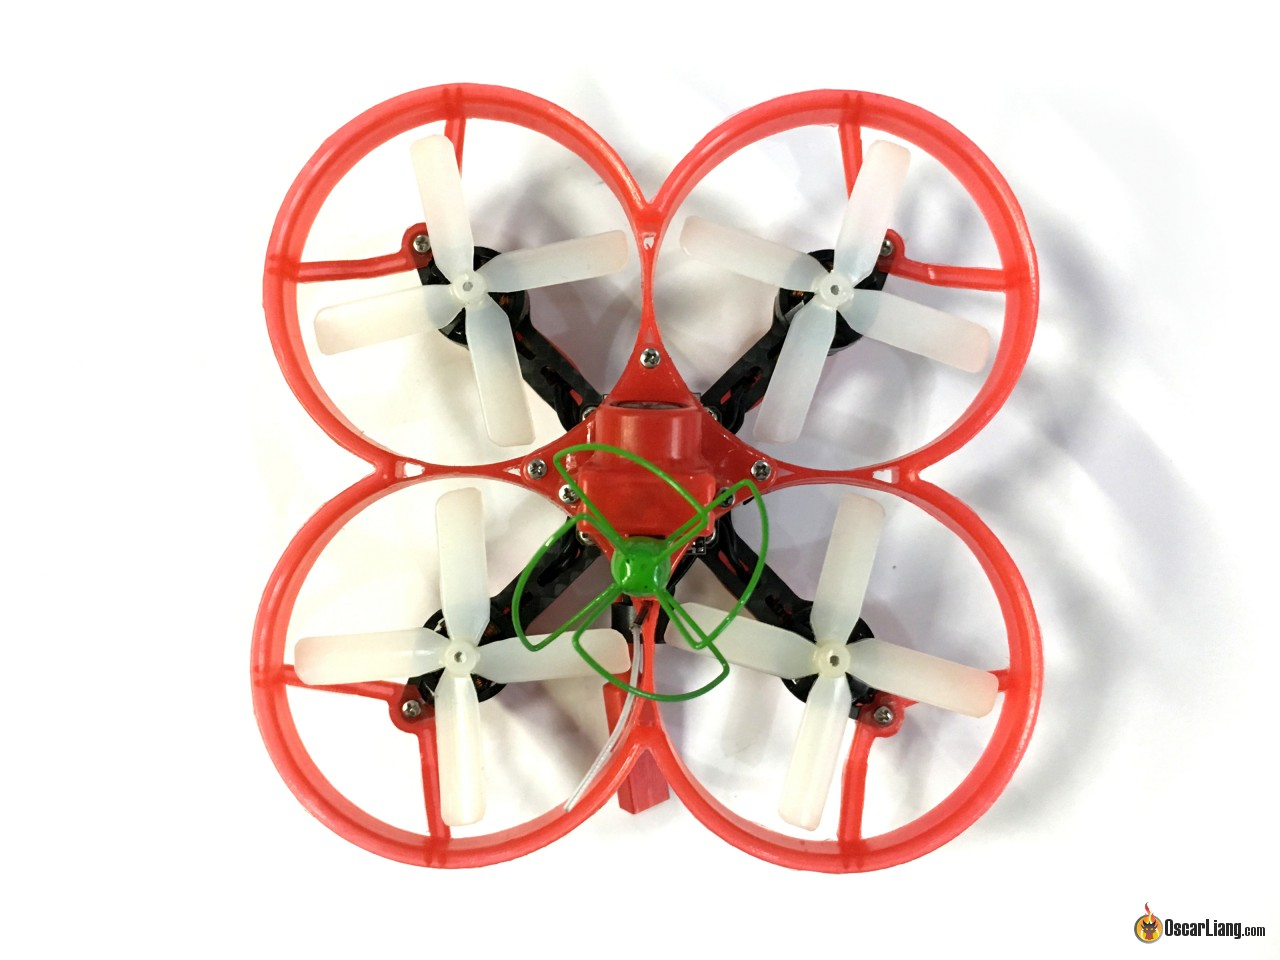 Brushless Tiny Whoop Interframe Media Happymodel Bwhoop65 65mm Tinywhoop Frame Fpv Motor 0603 The Moskito70 Vs Betafpv 2pcs Beta75 Pro Micro Upgraded For 0703 Or